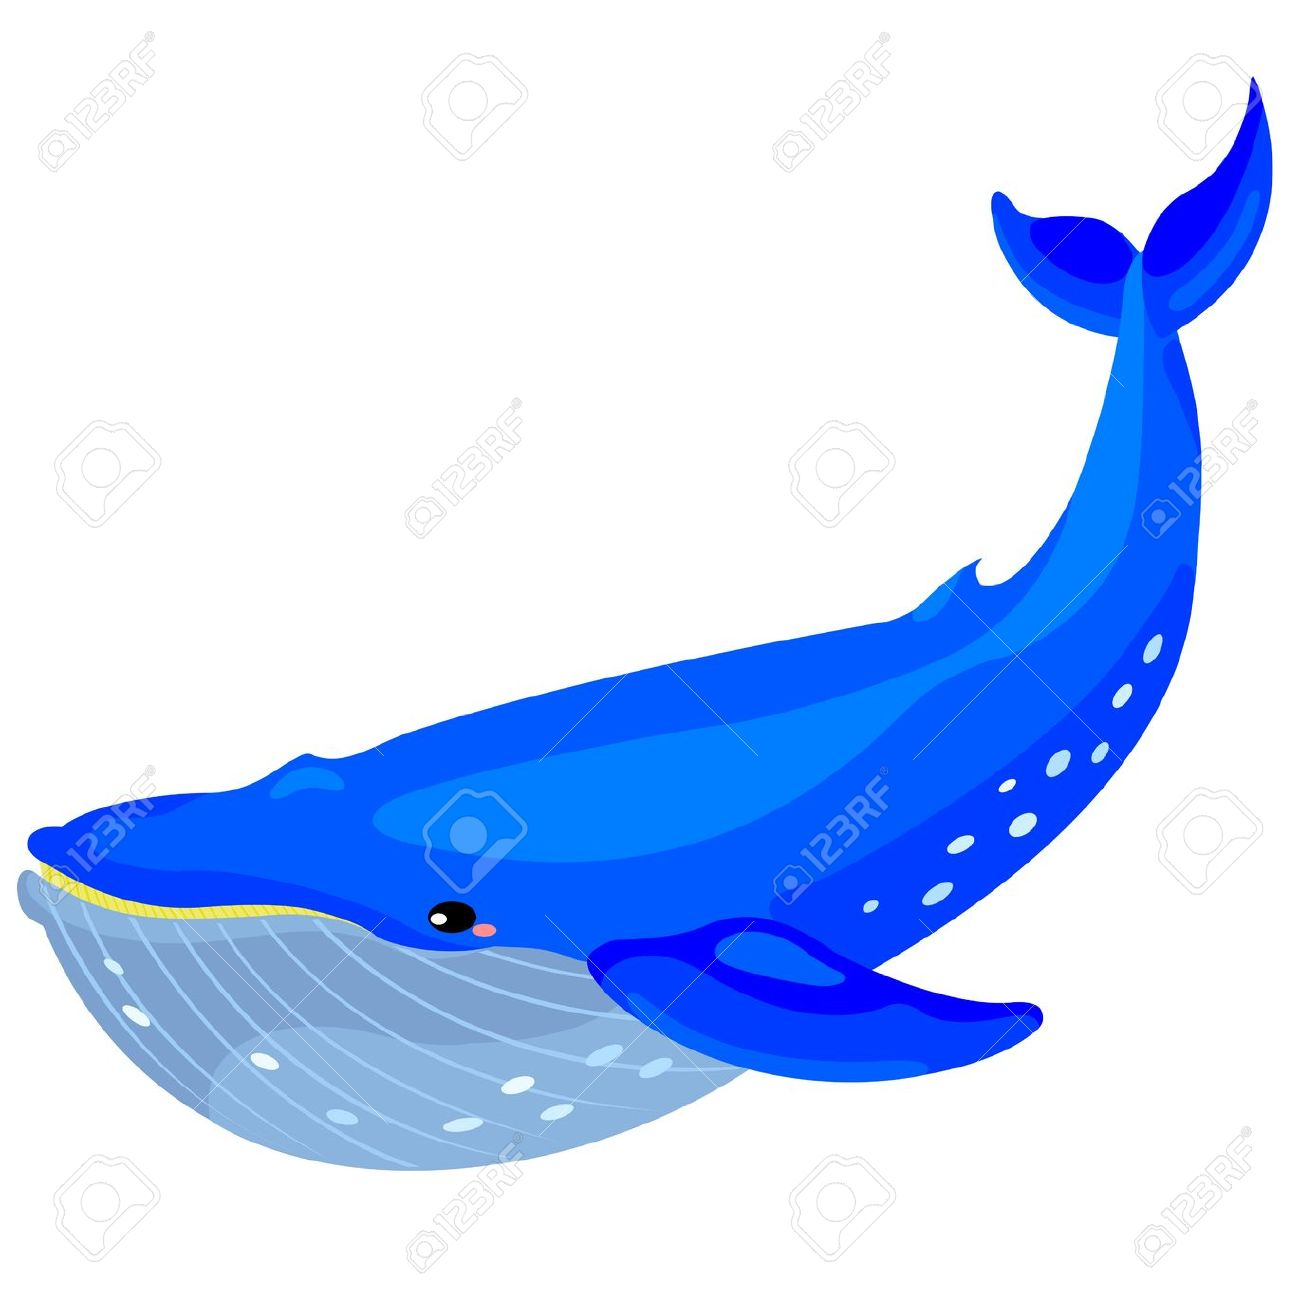 Baleine clipart #15, Download drawings